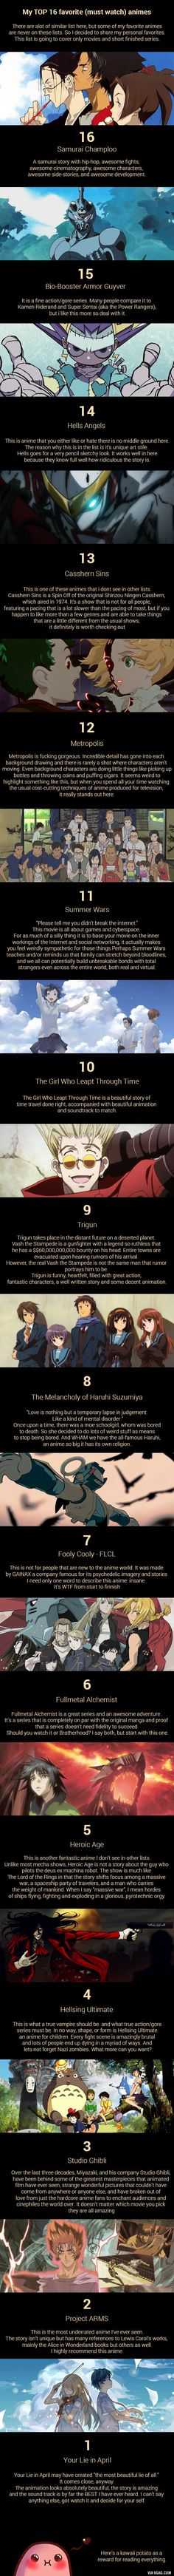 My top 16 must-watch anime list. With short reviews. http://9gag.com/gag/a6L8x2e?ref=fbp